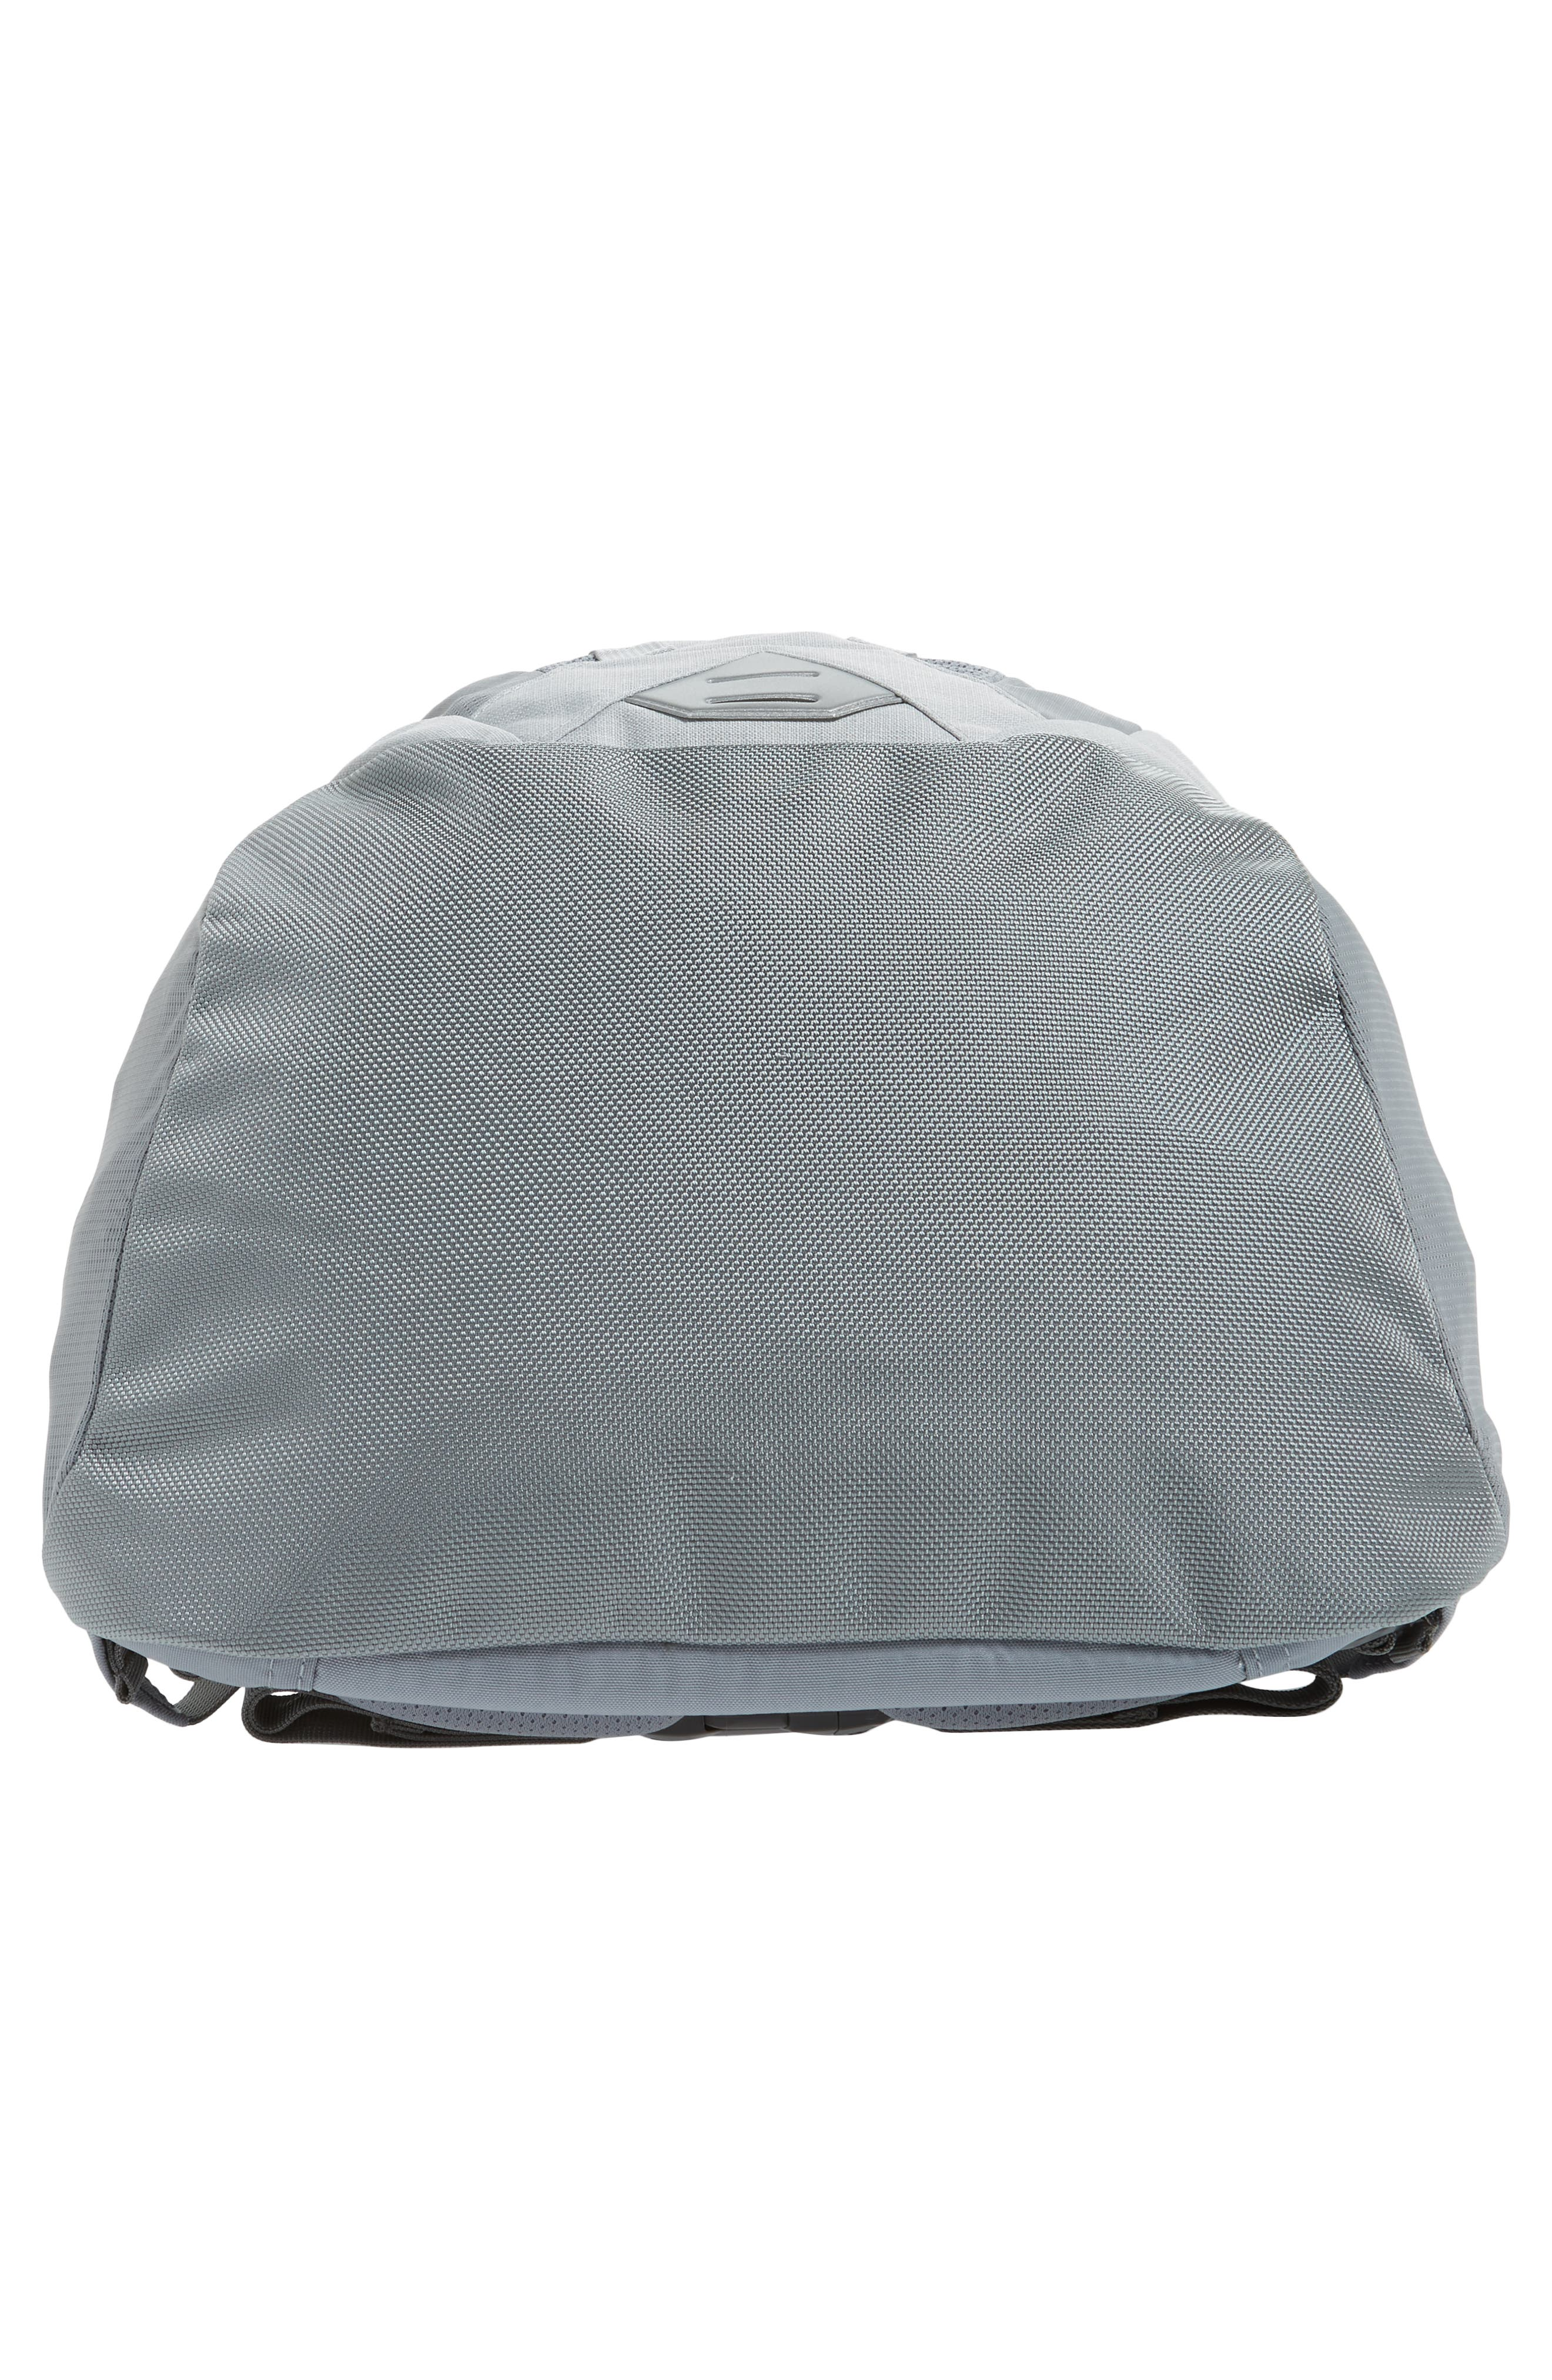 Recon Backpack,                             Alternate thumbnail 6, color,                             HIGH RISE GREY HEATHER/ GREY